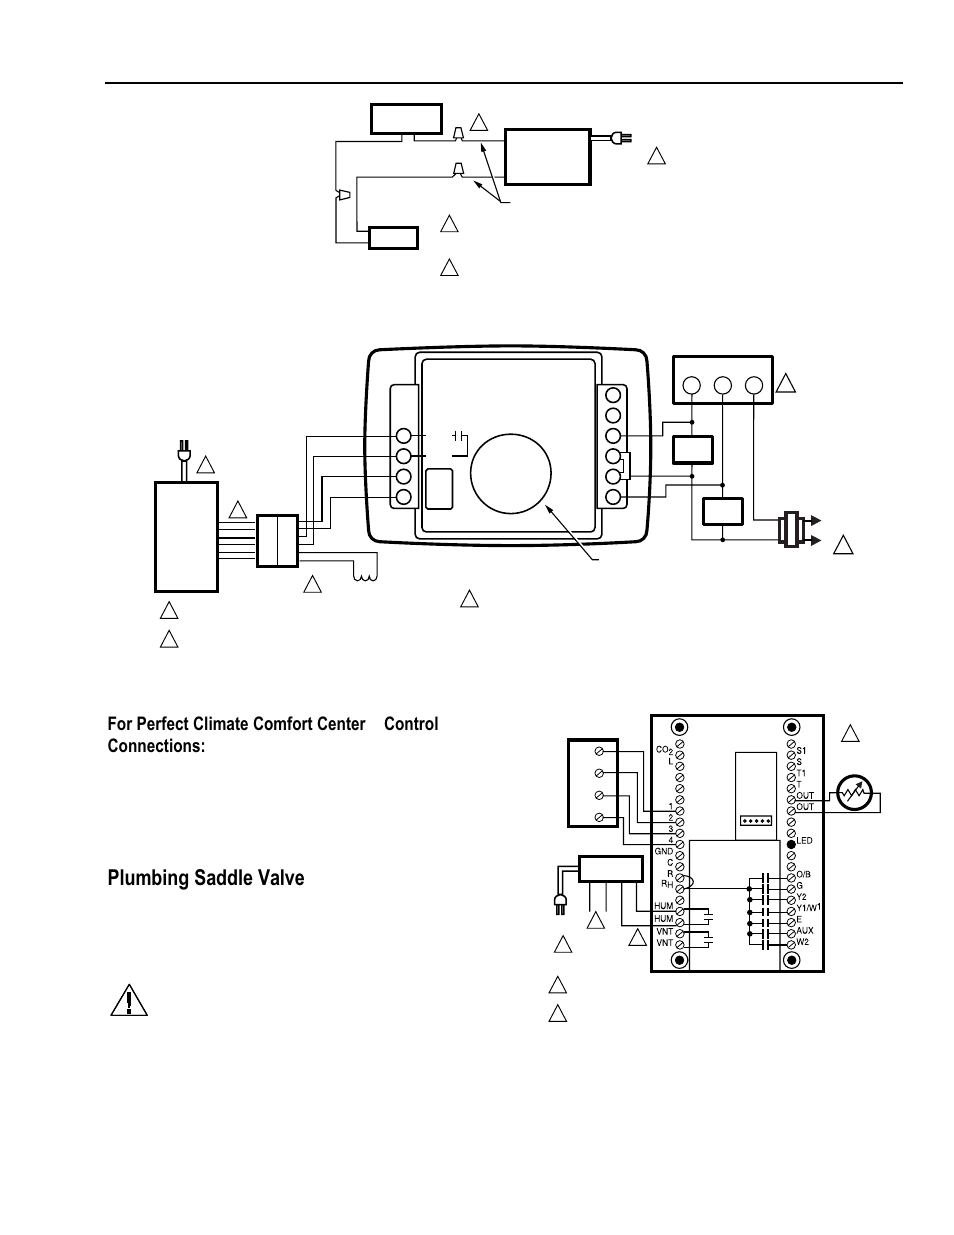 Honeywell He360 Wiring Diagram from schematron.org